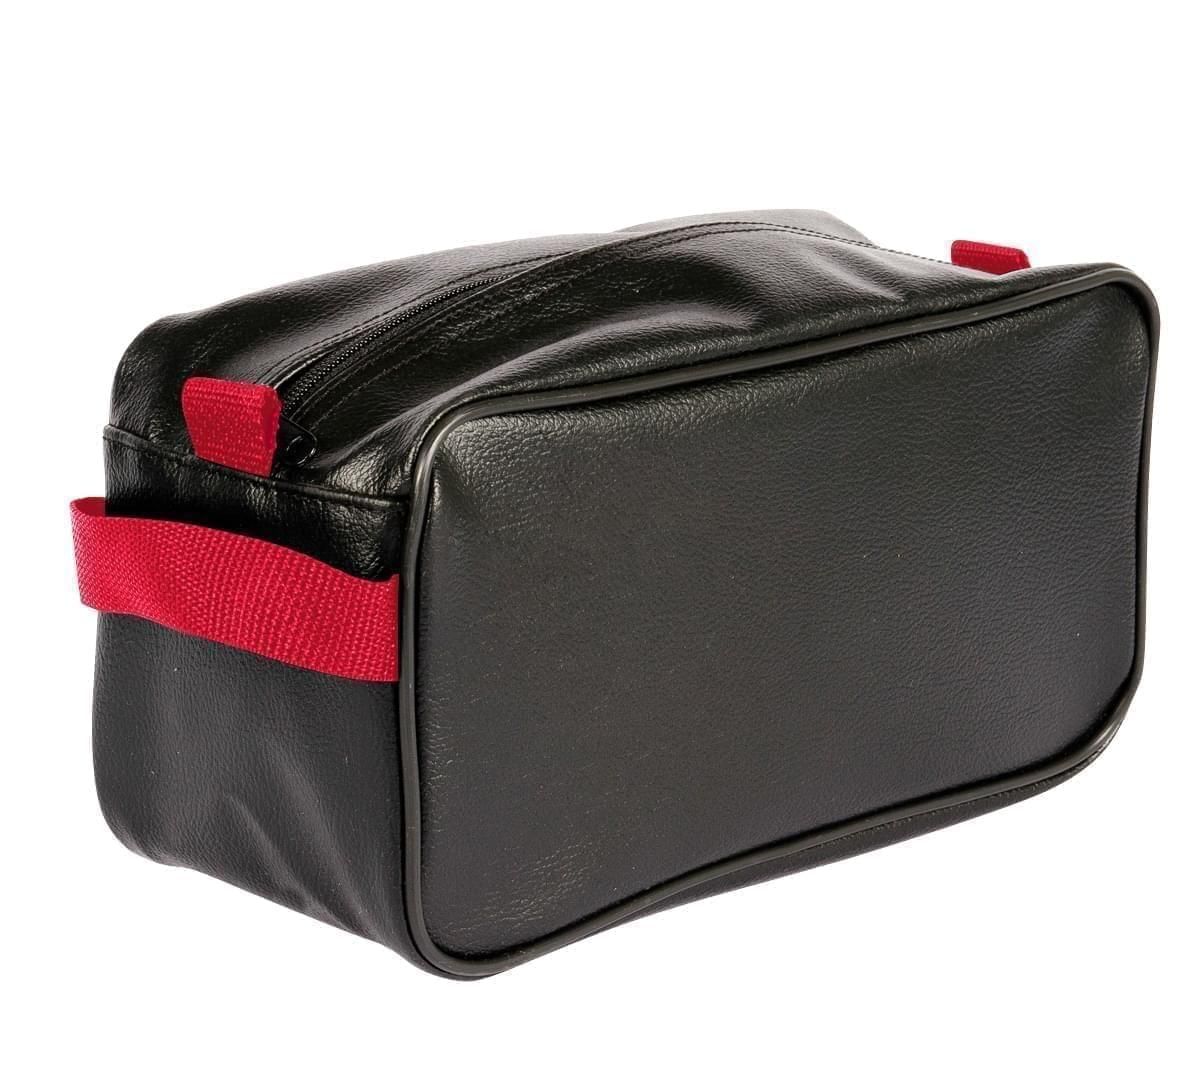 USA Made Cosmetic & Toiletry Cases, Black-Red, 3000996-AO2